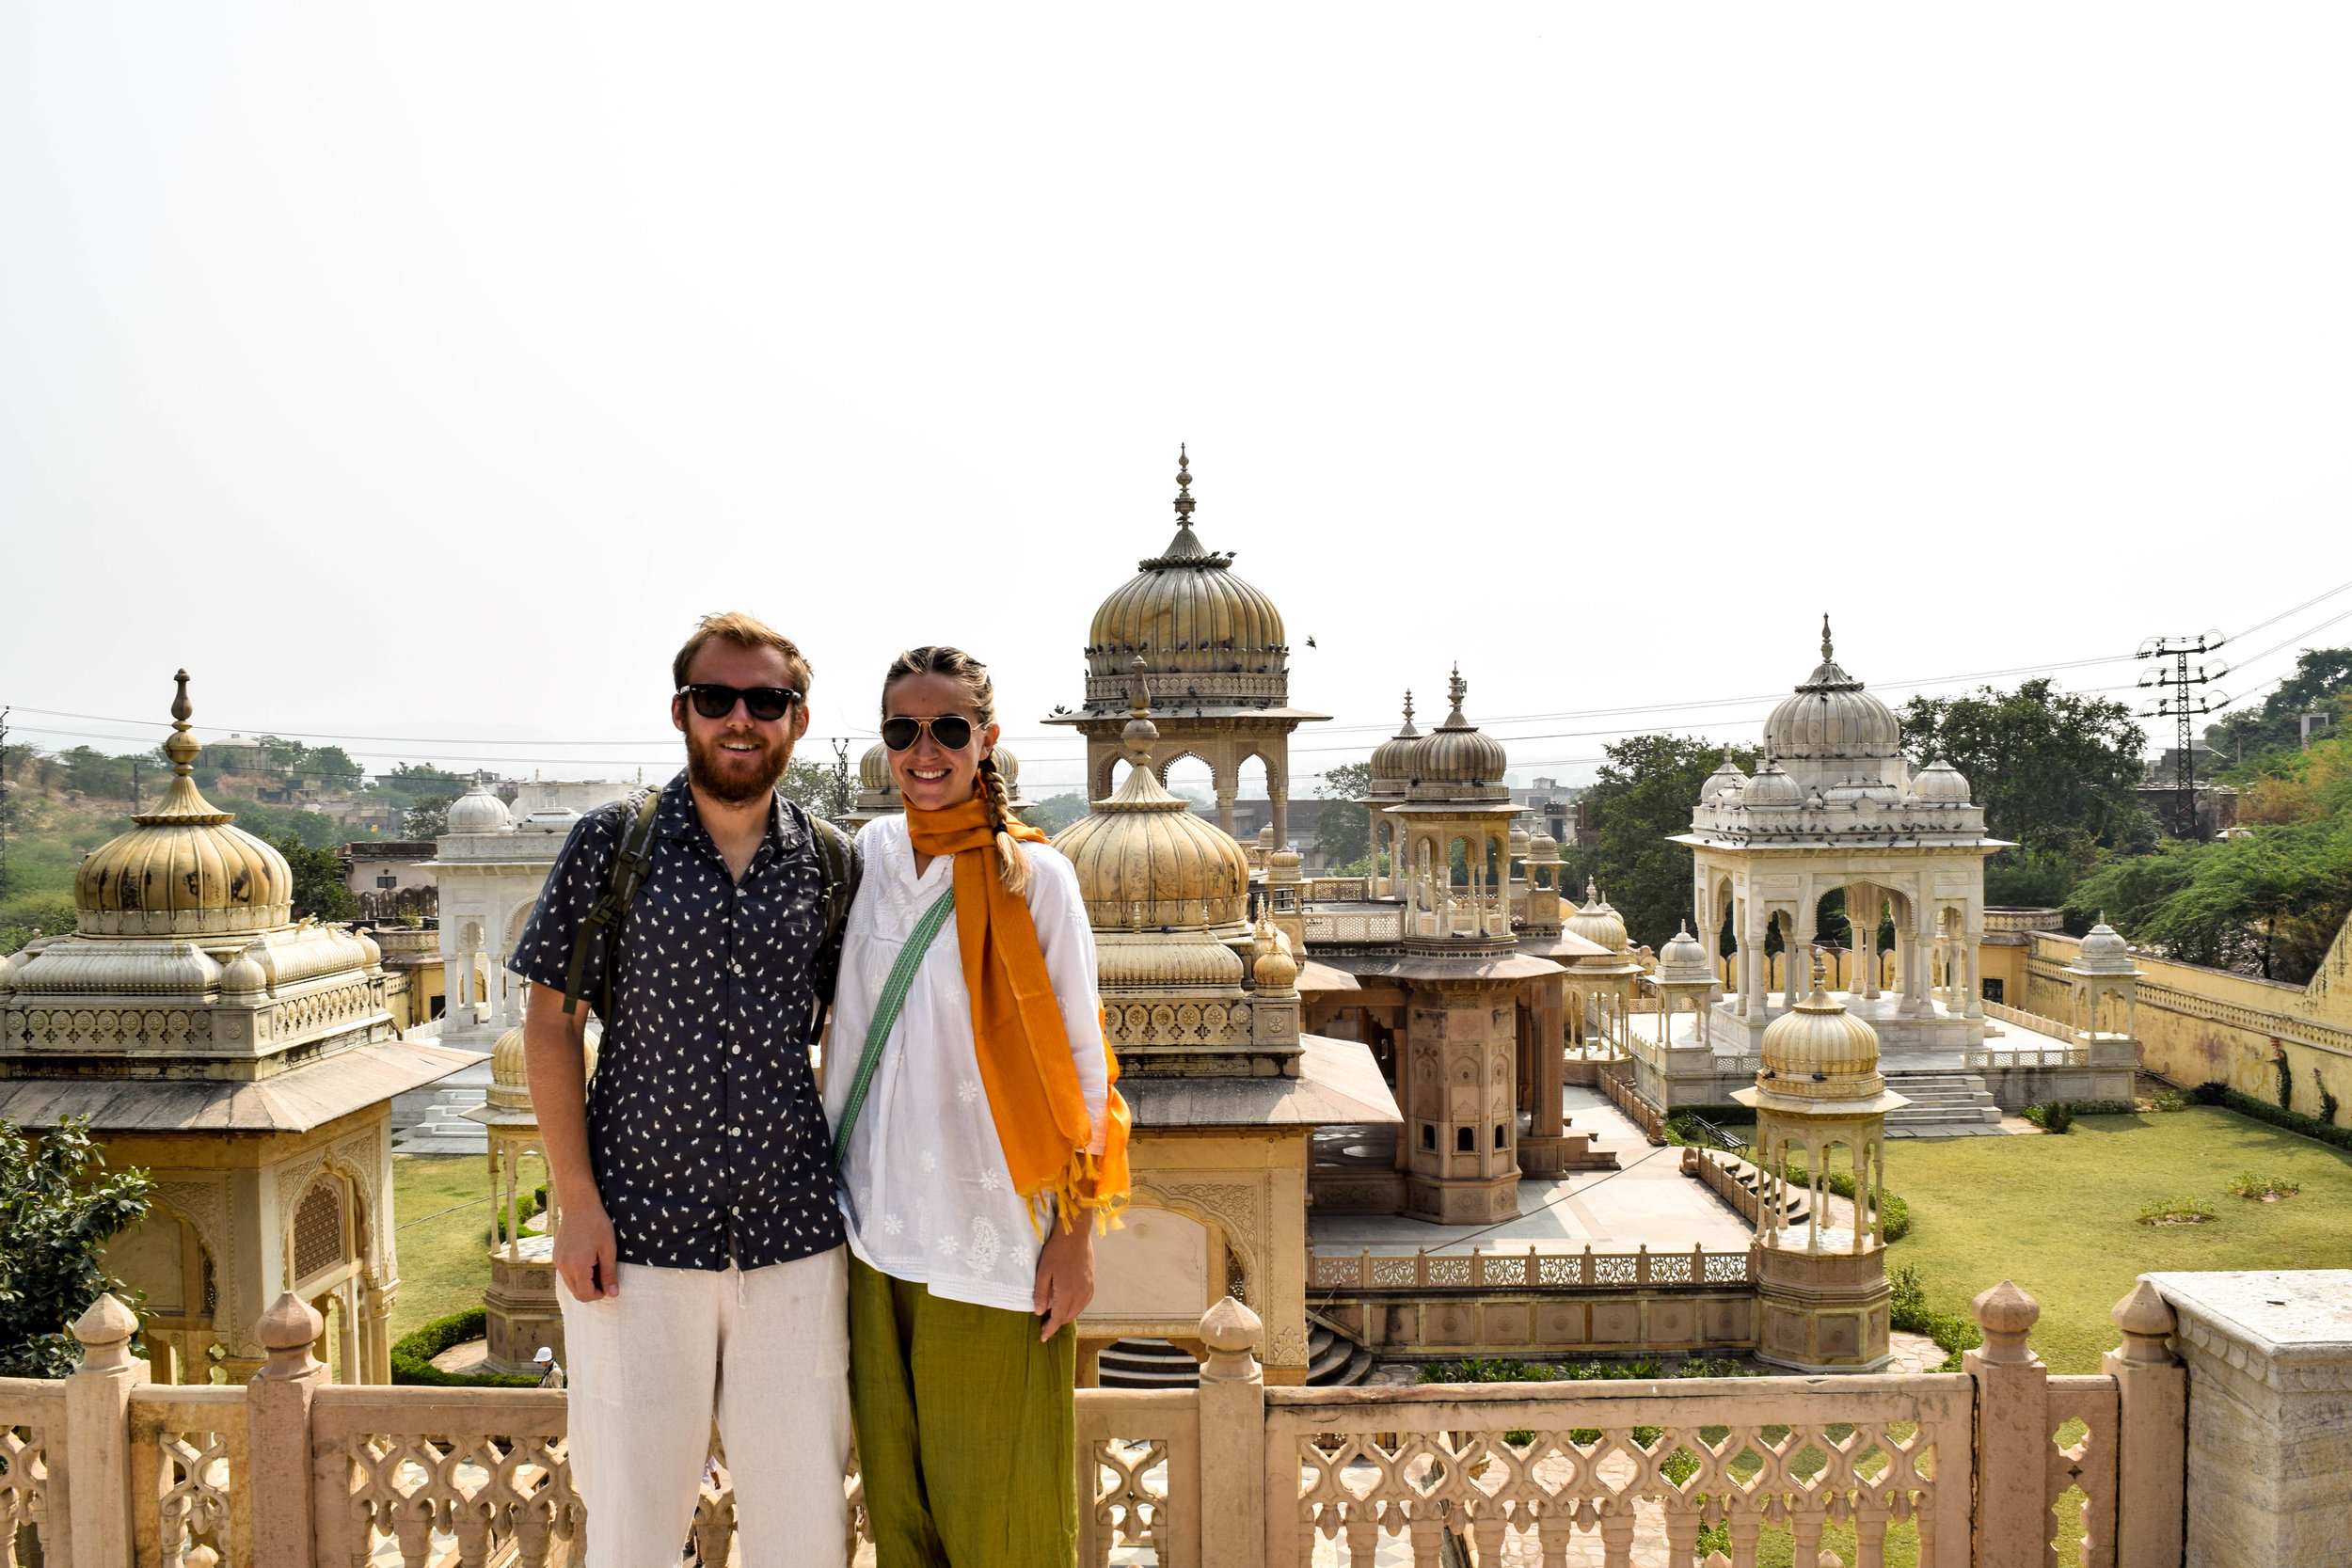 Rare pic of both of us together in front of the camera (at the Royal Gaitor cenotaphs).